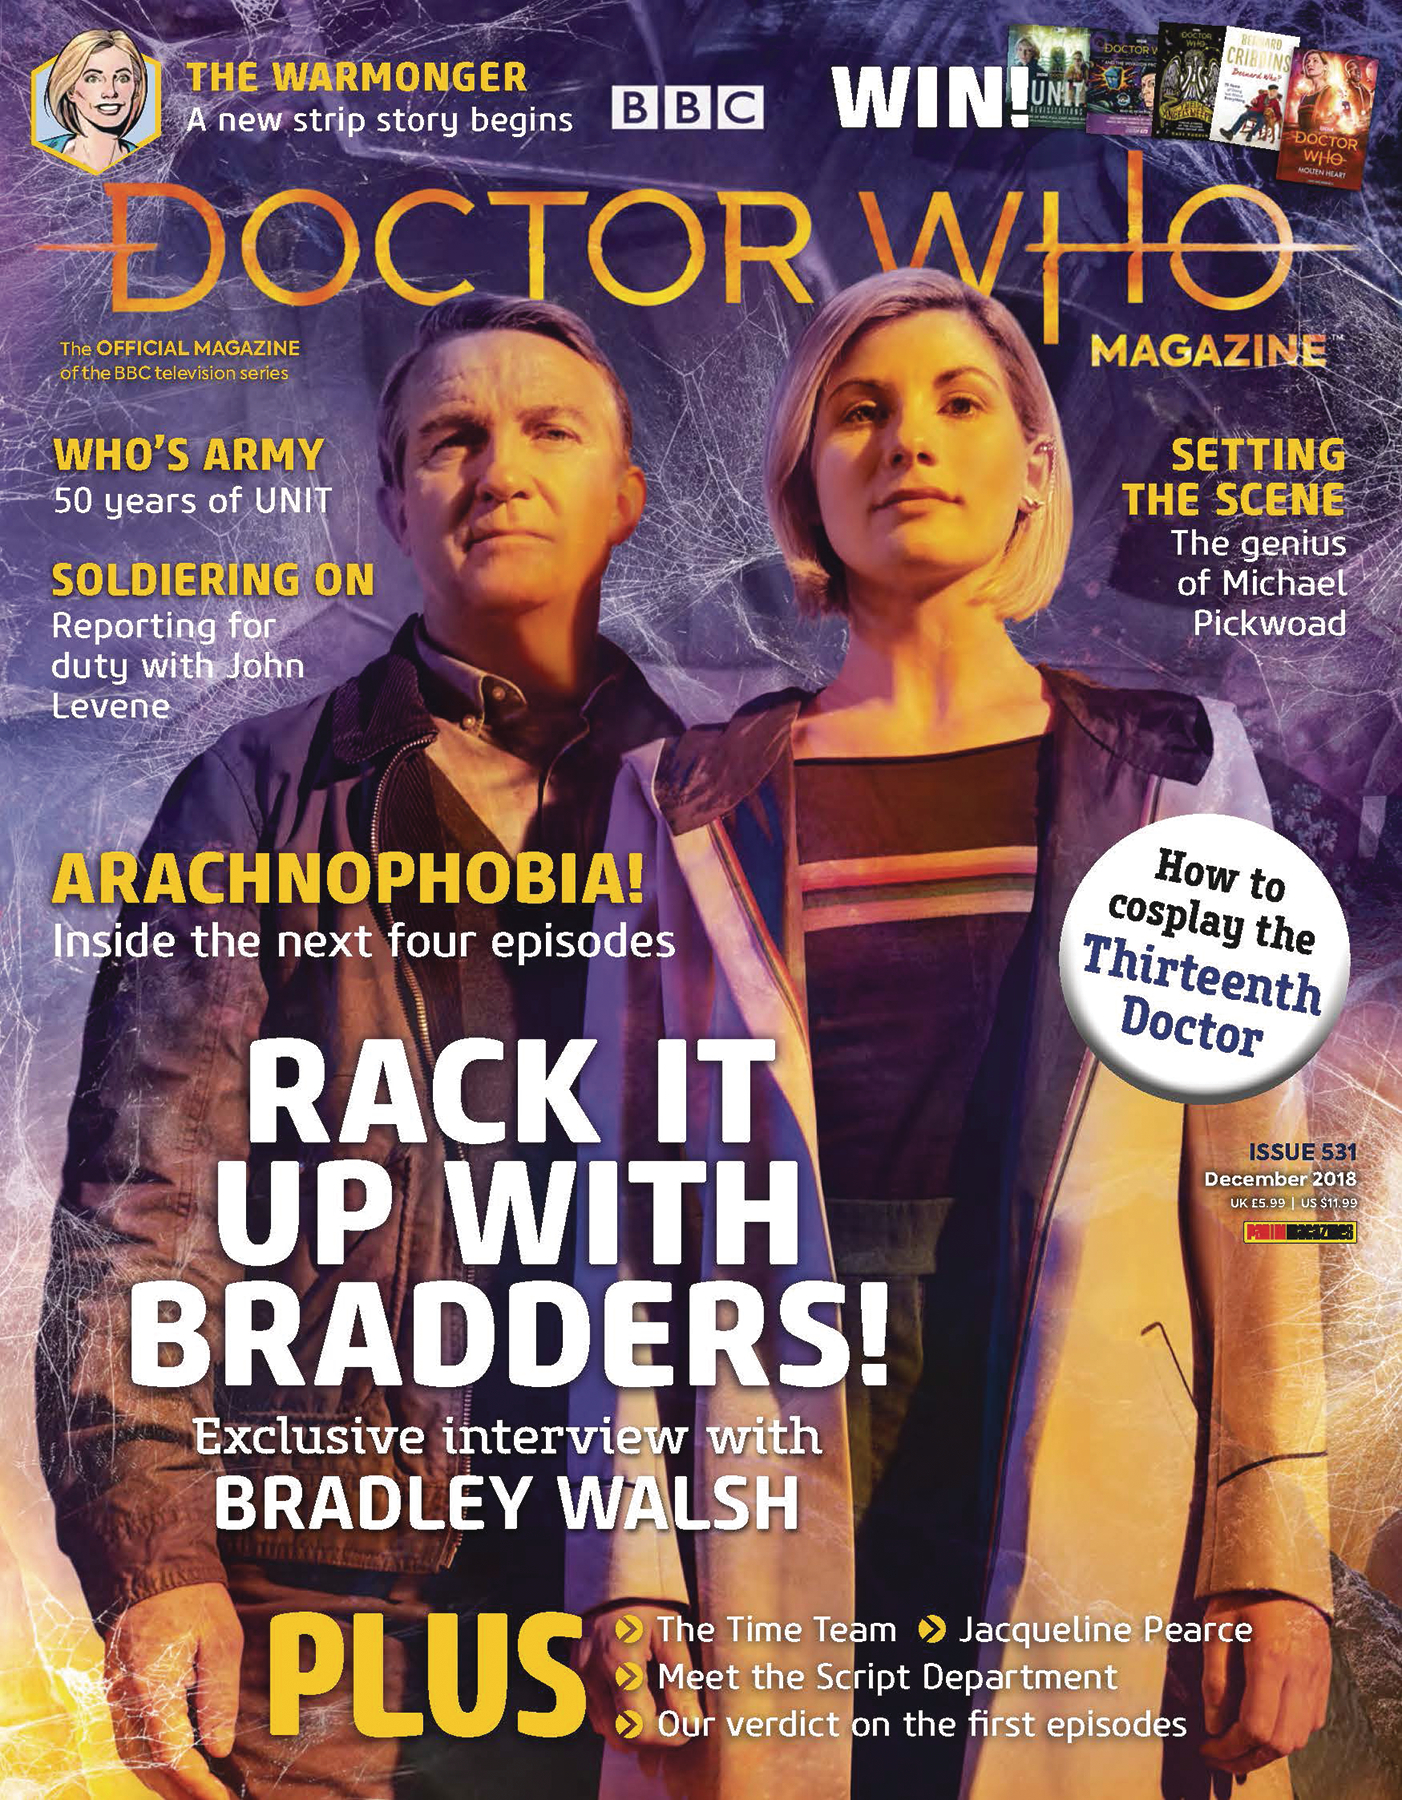 DOCTOR WHO MAGAZINE #536